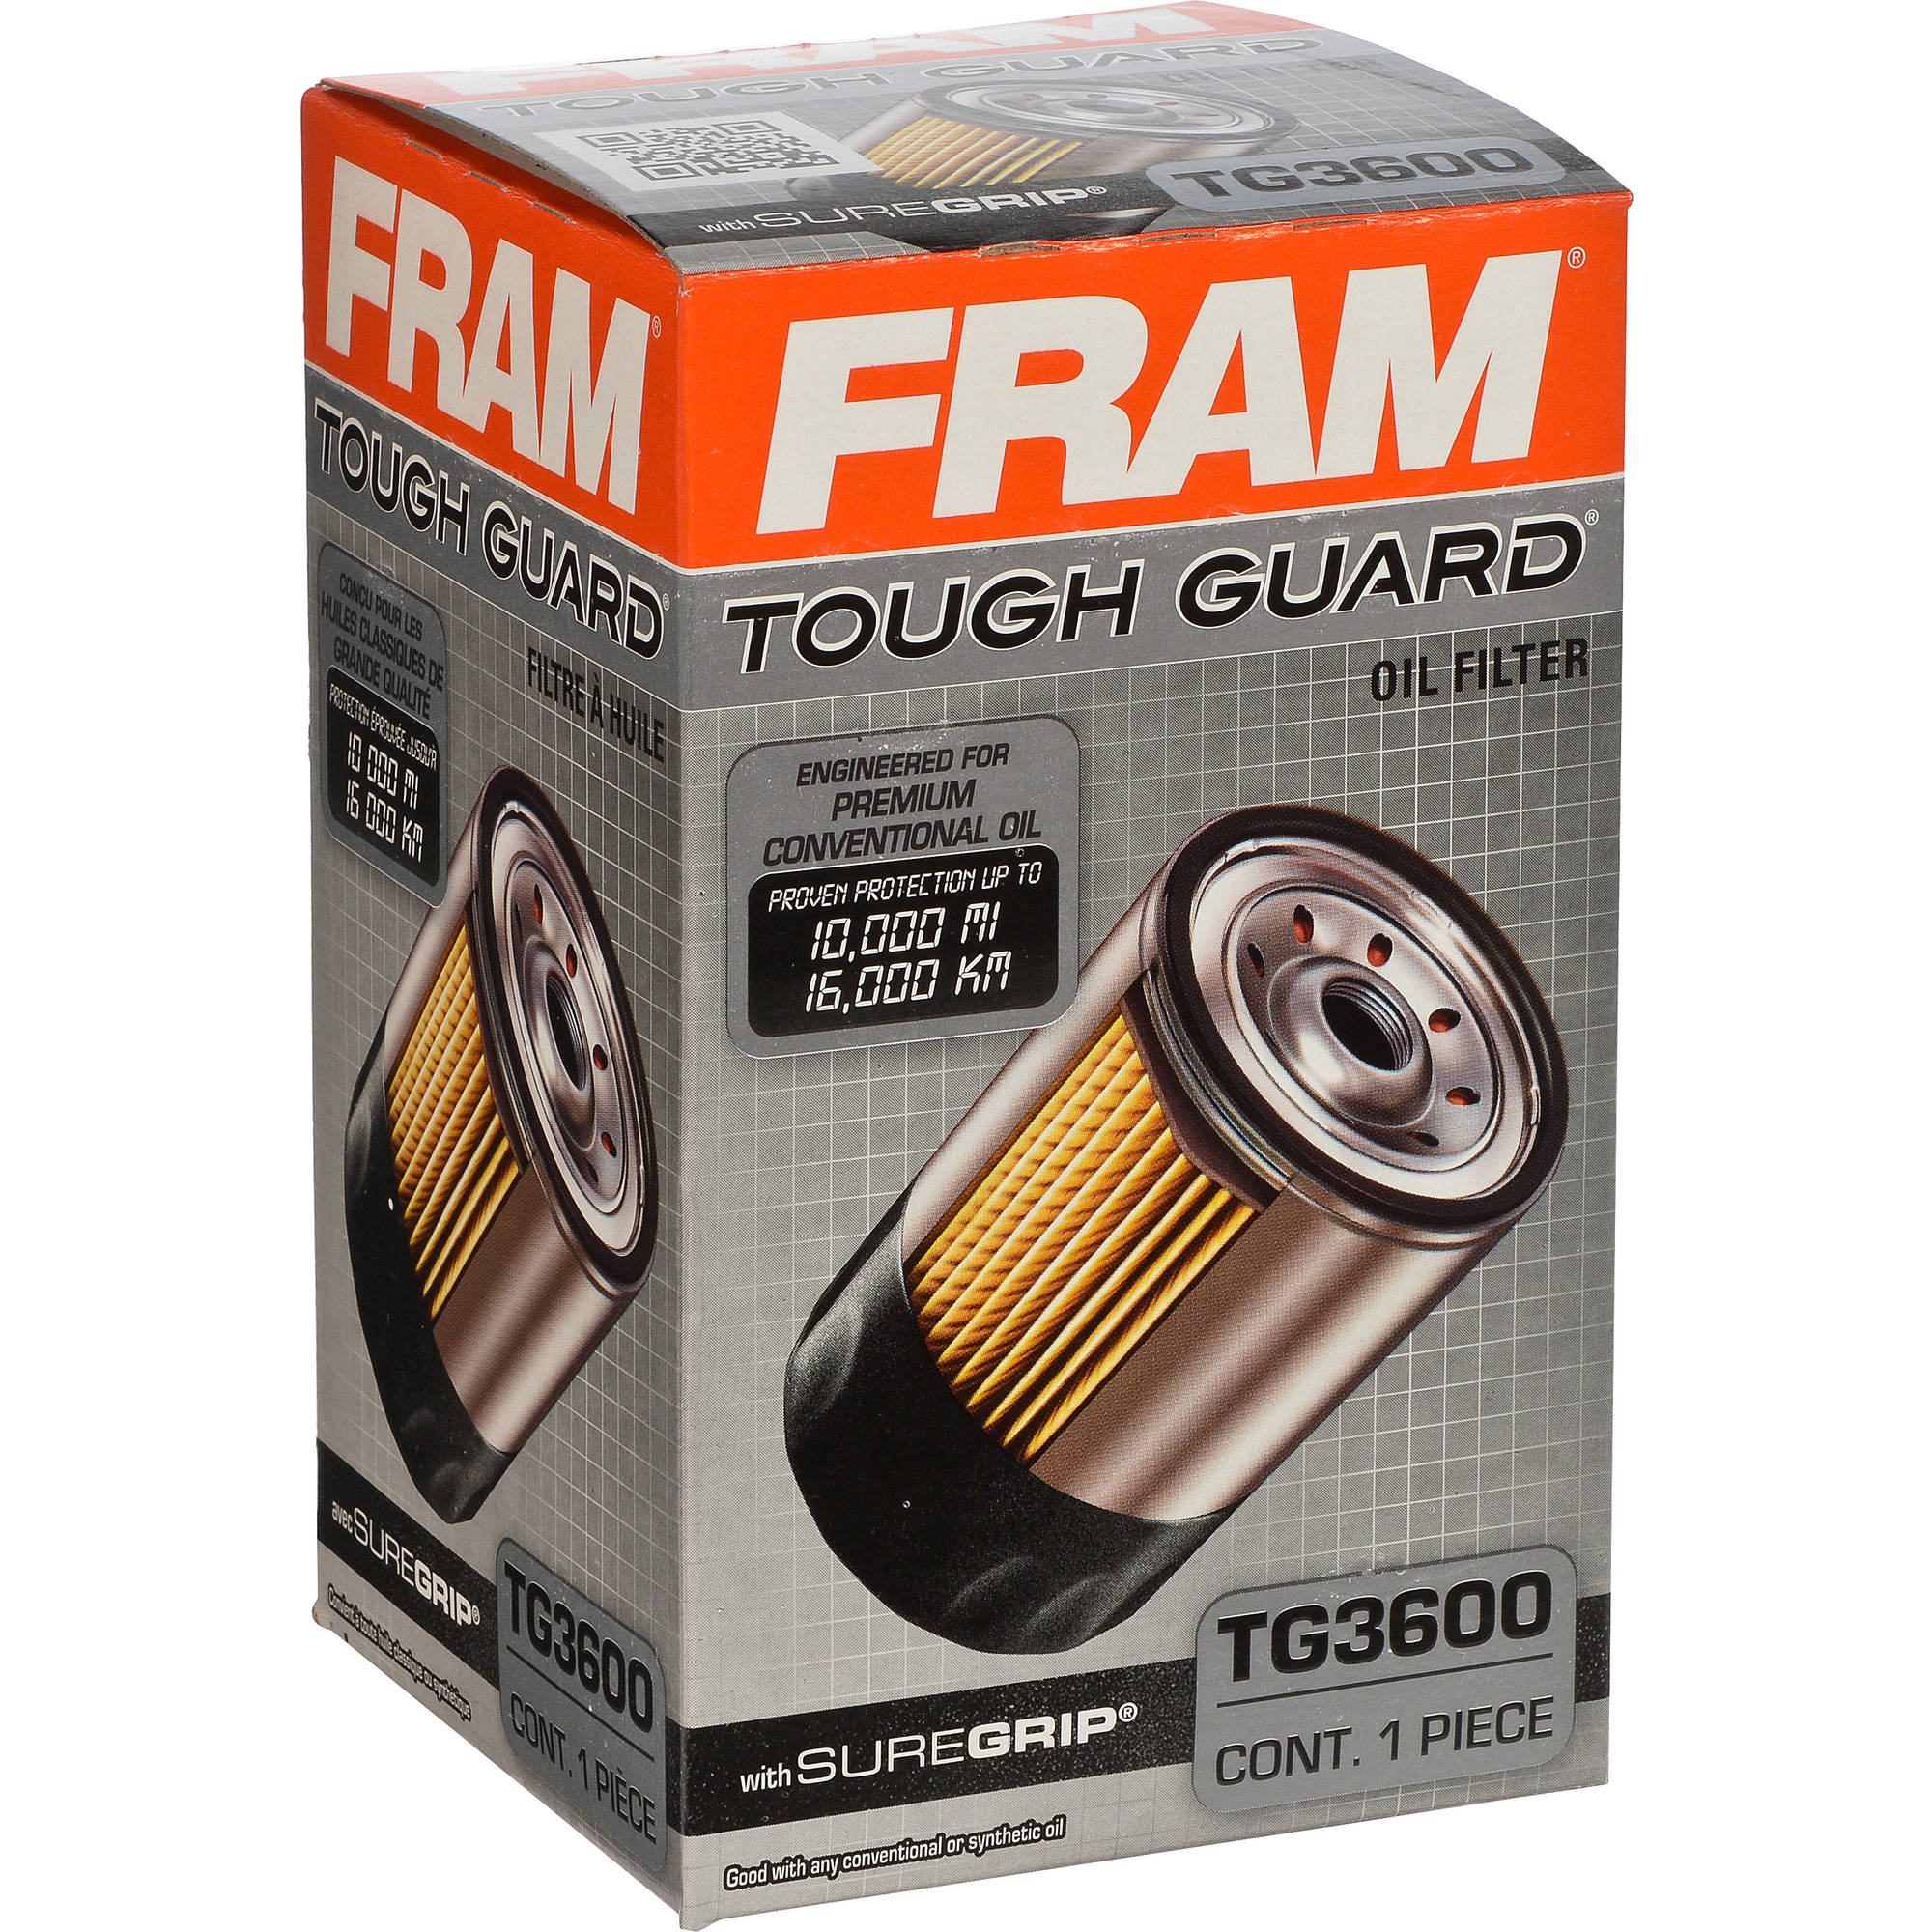 FRAM Tough Guard Oil Filter, TG3600